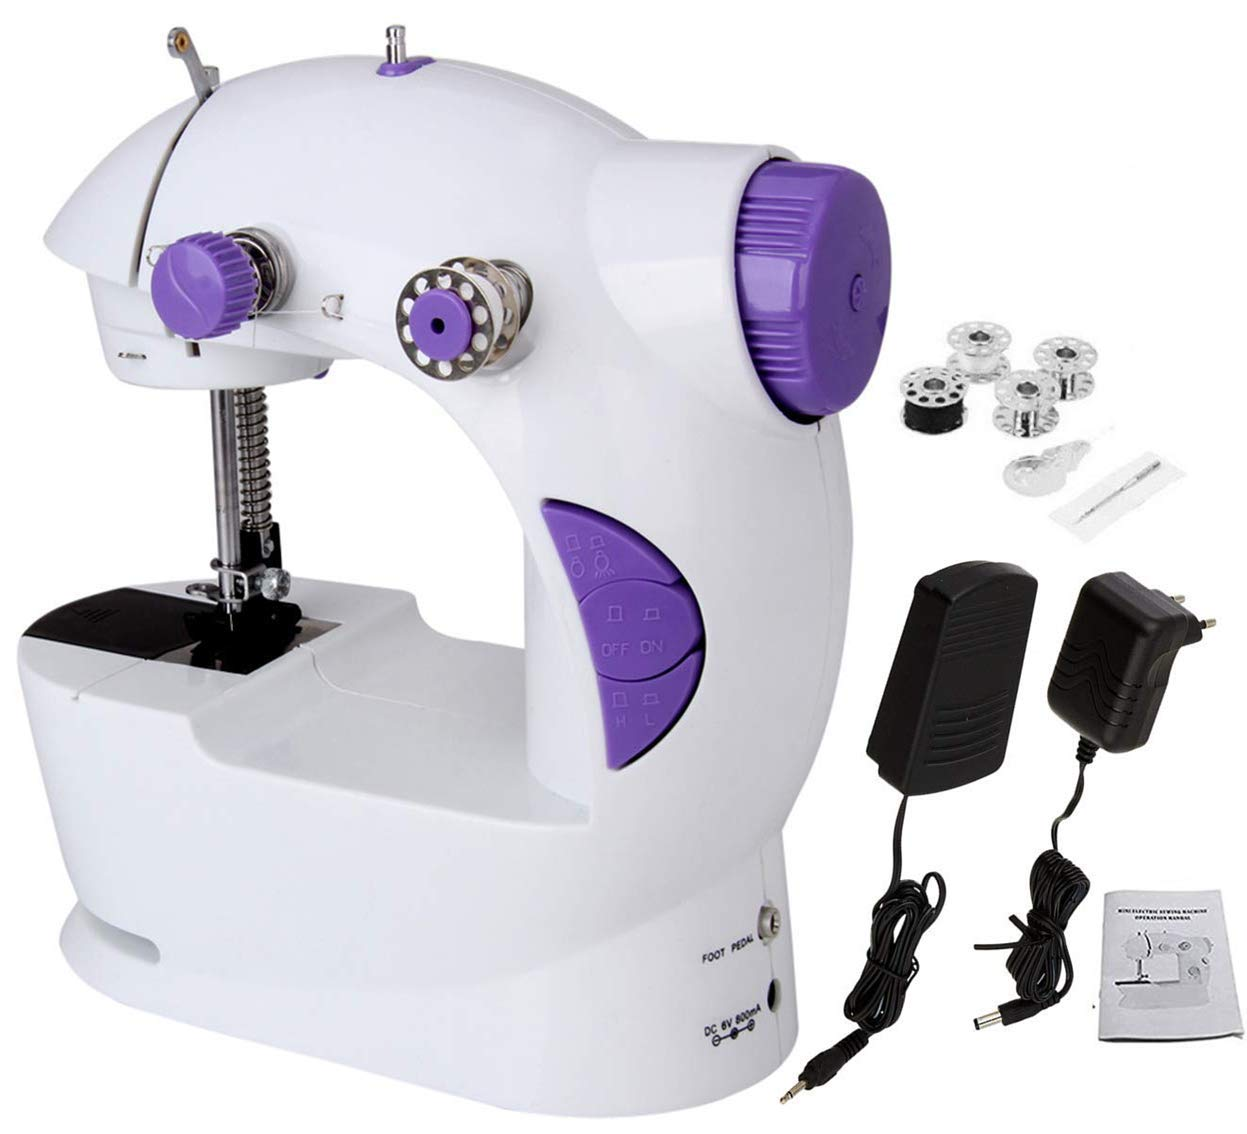 Vivir Electric 4 in 1 Household Mini Sewing Machines